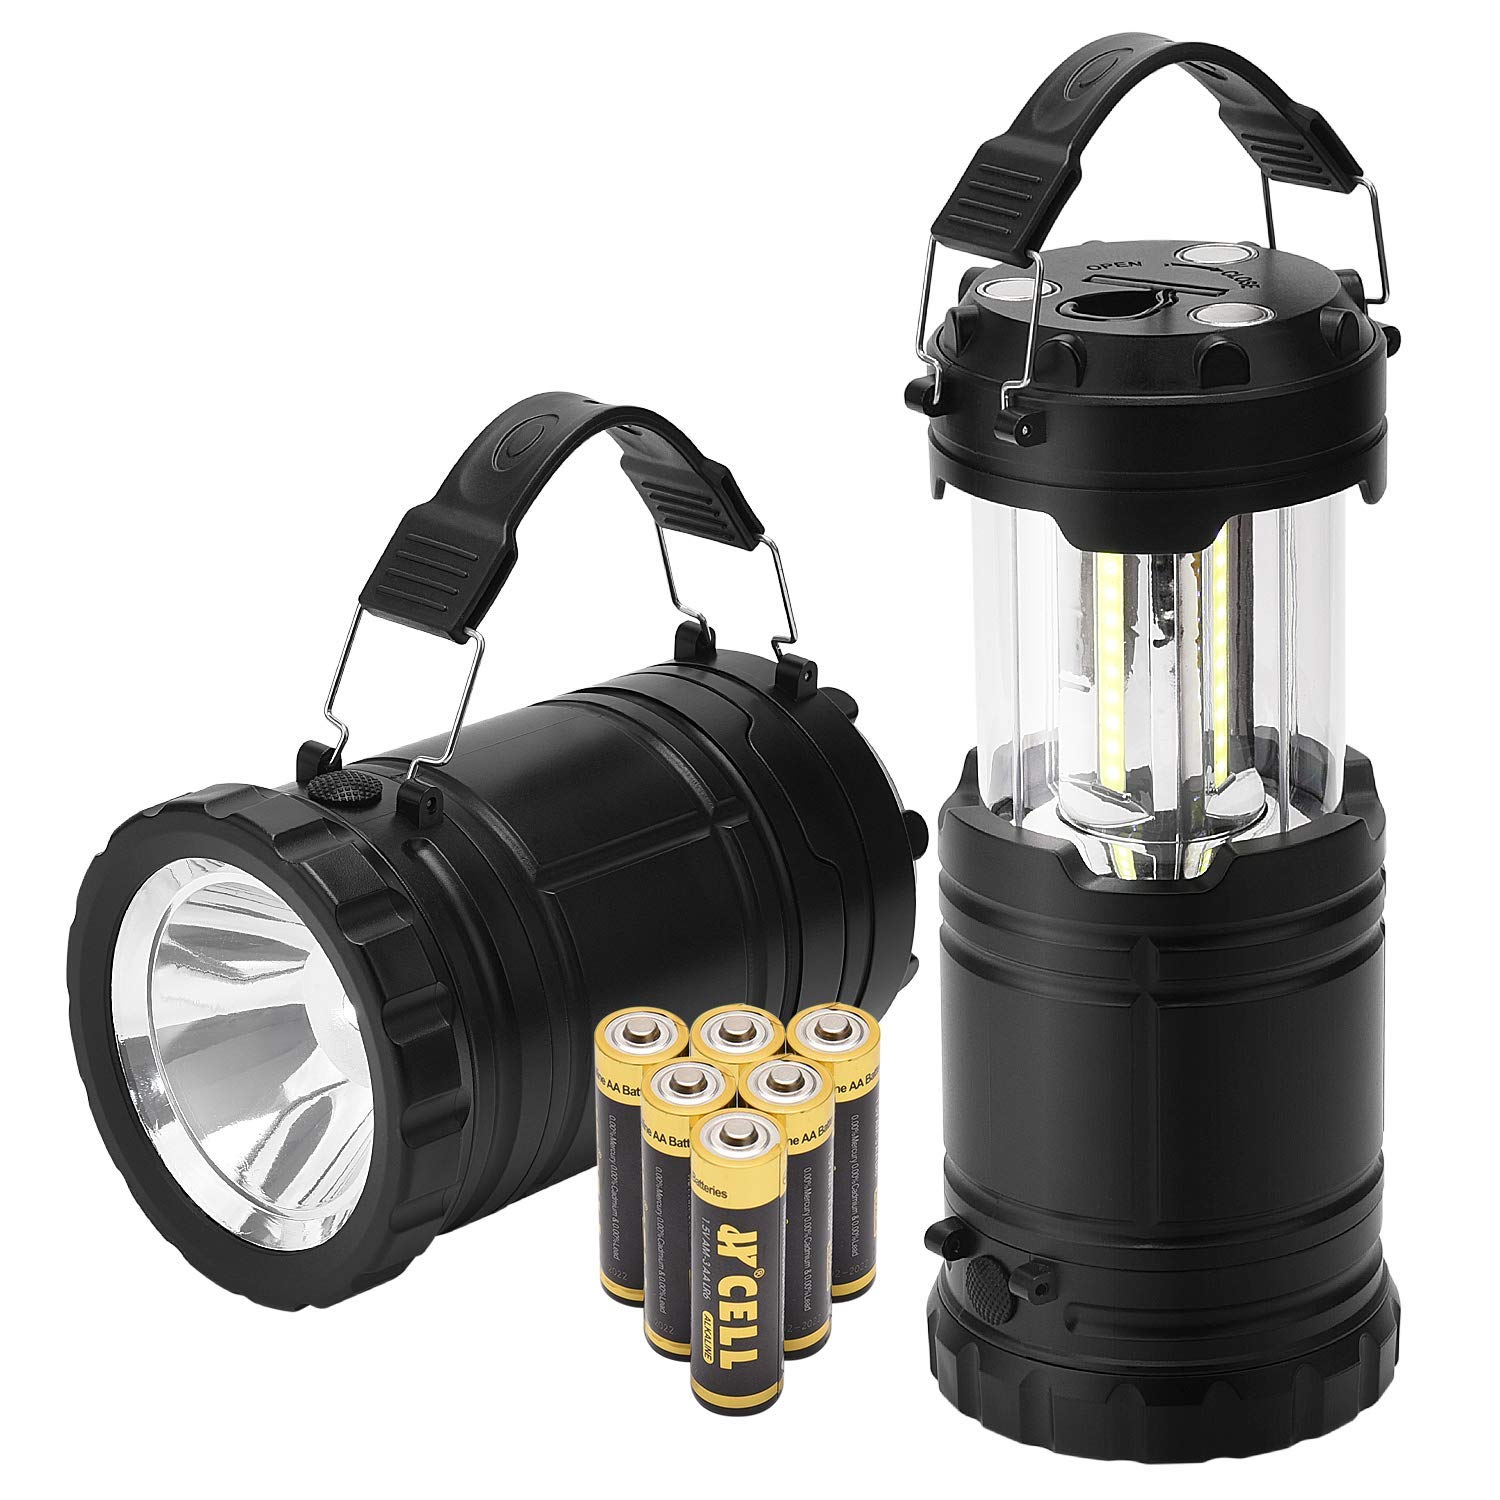 PACEARTH Camping Lanterns Battery Powered Led Lantern Flashlights with Batteries Handheld Collapsible Rechargeable Spotlight Magnetic Base 2 in 1 Power Outage Lamps for Emergency